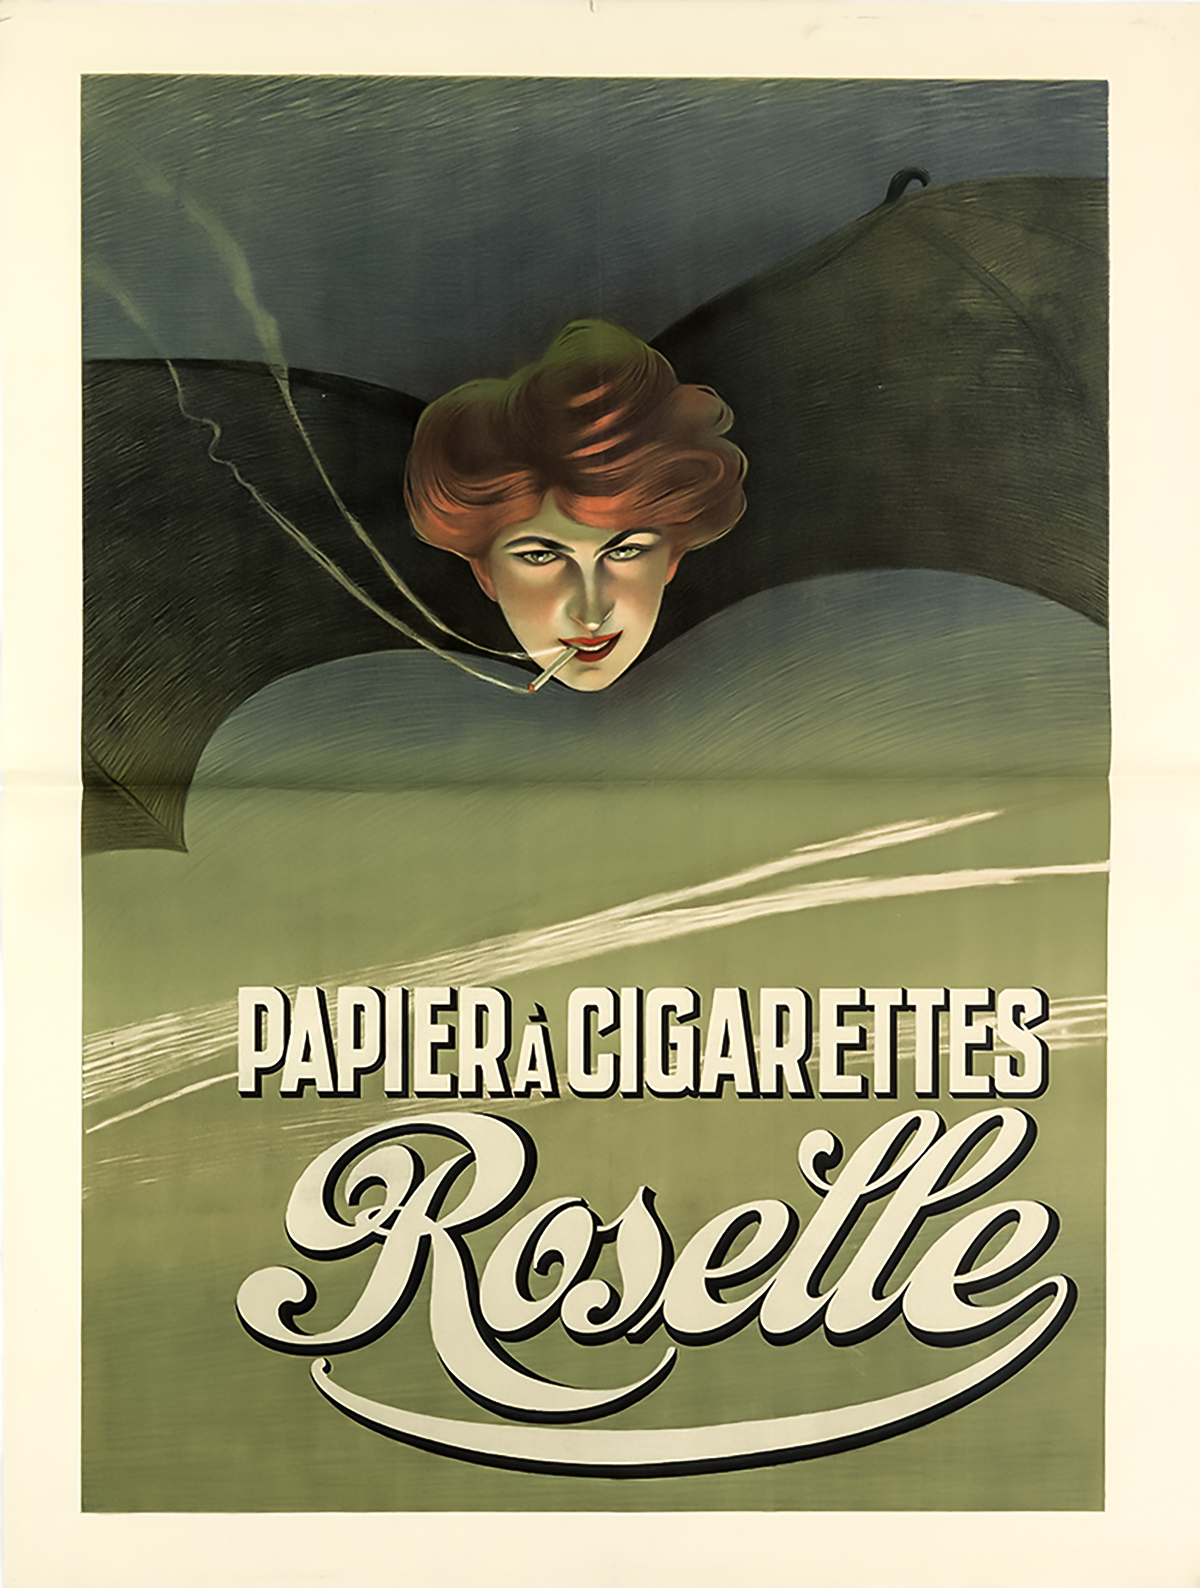 Artist unknown for Roselle Papers c.1900.